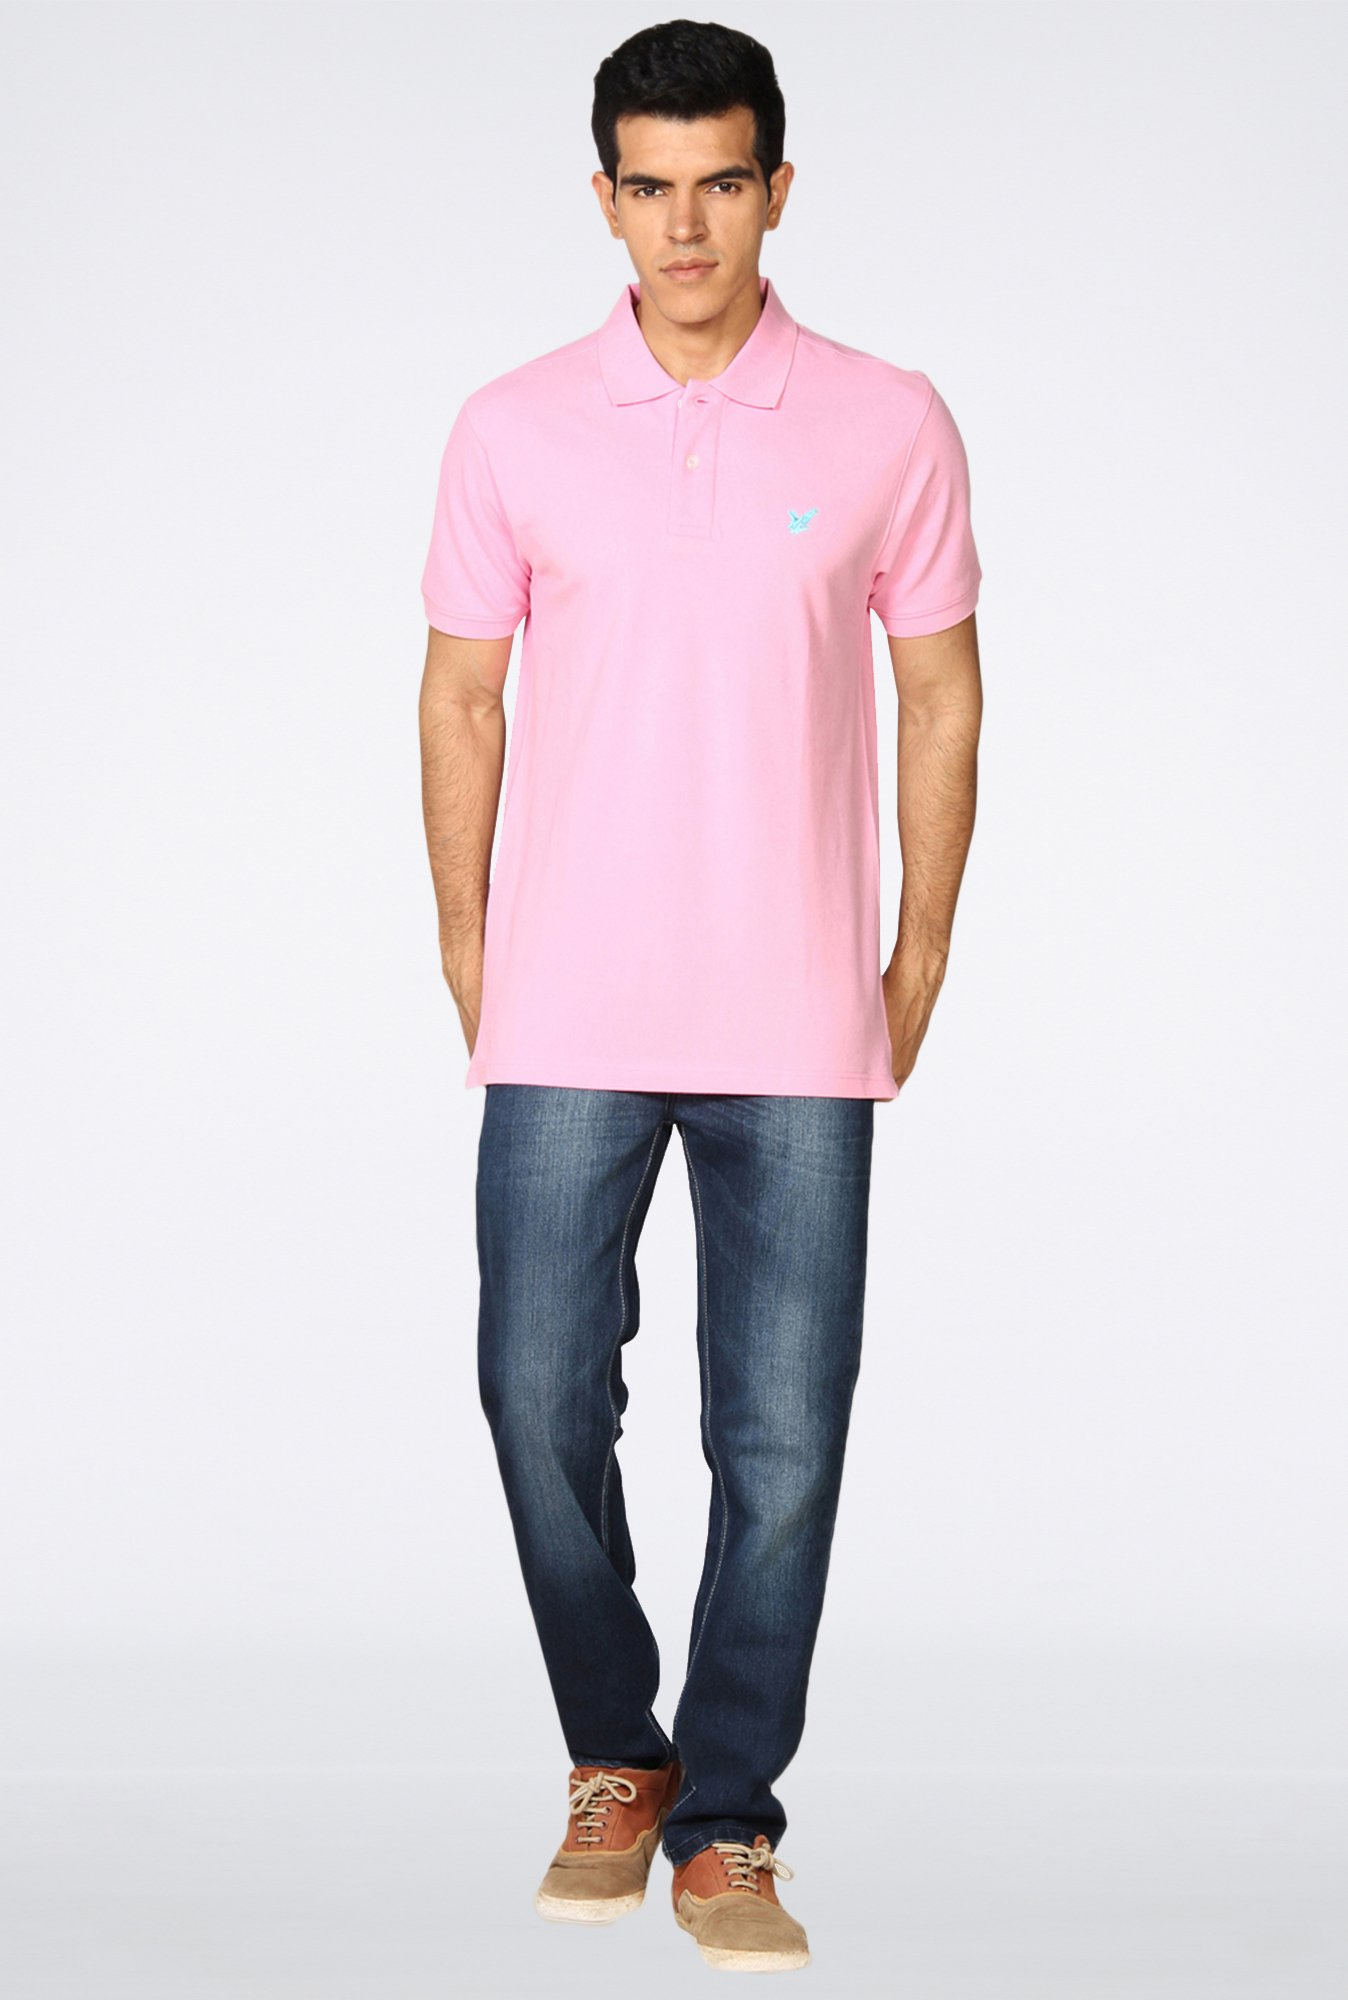 Provogue Pink Polo T-Shirt